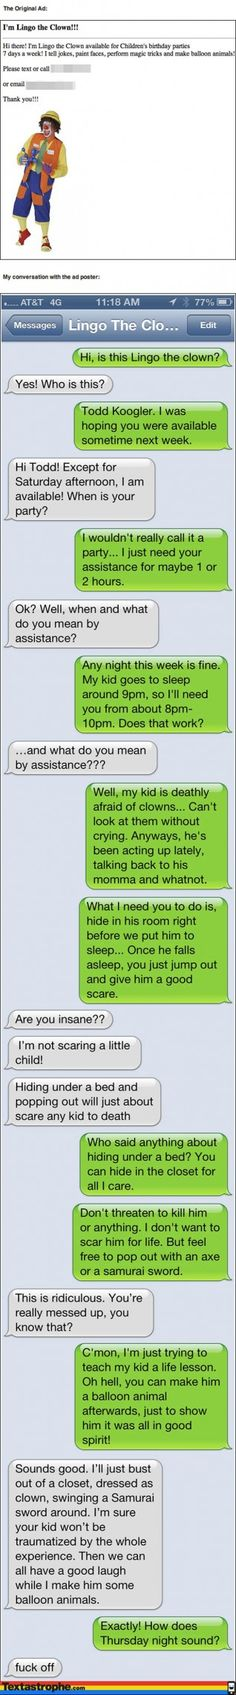 9 funny text message pranks